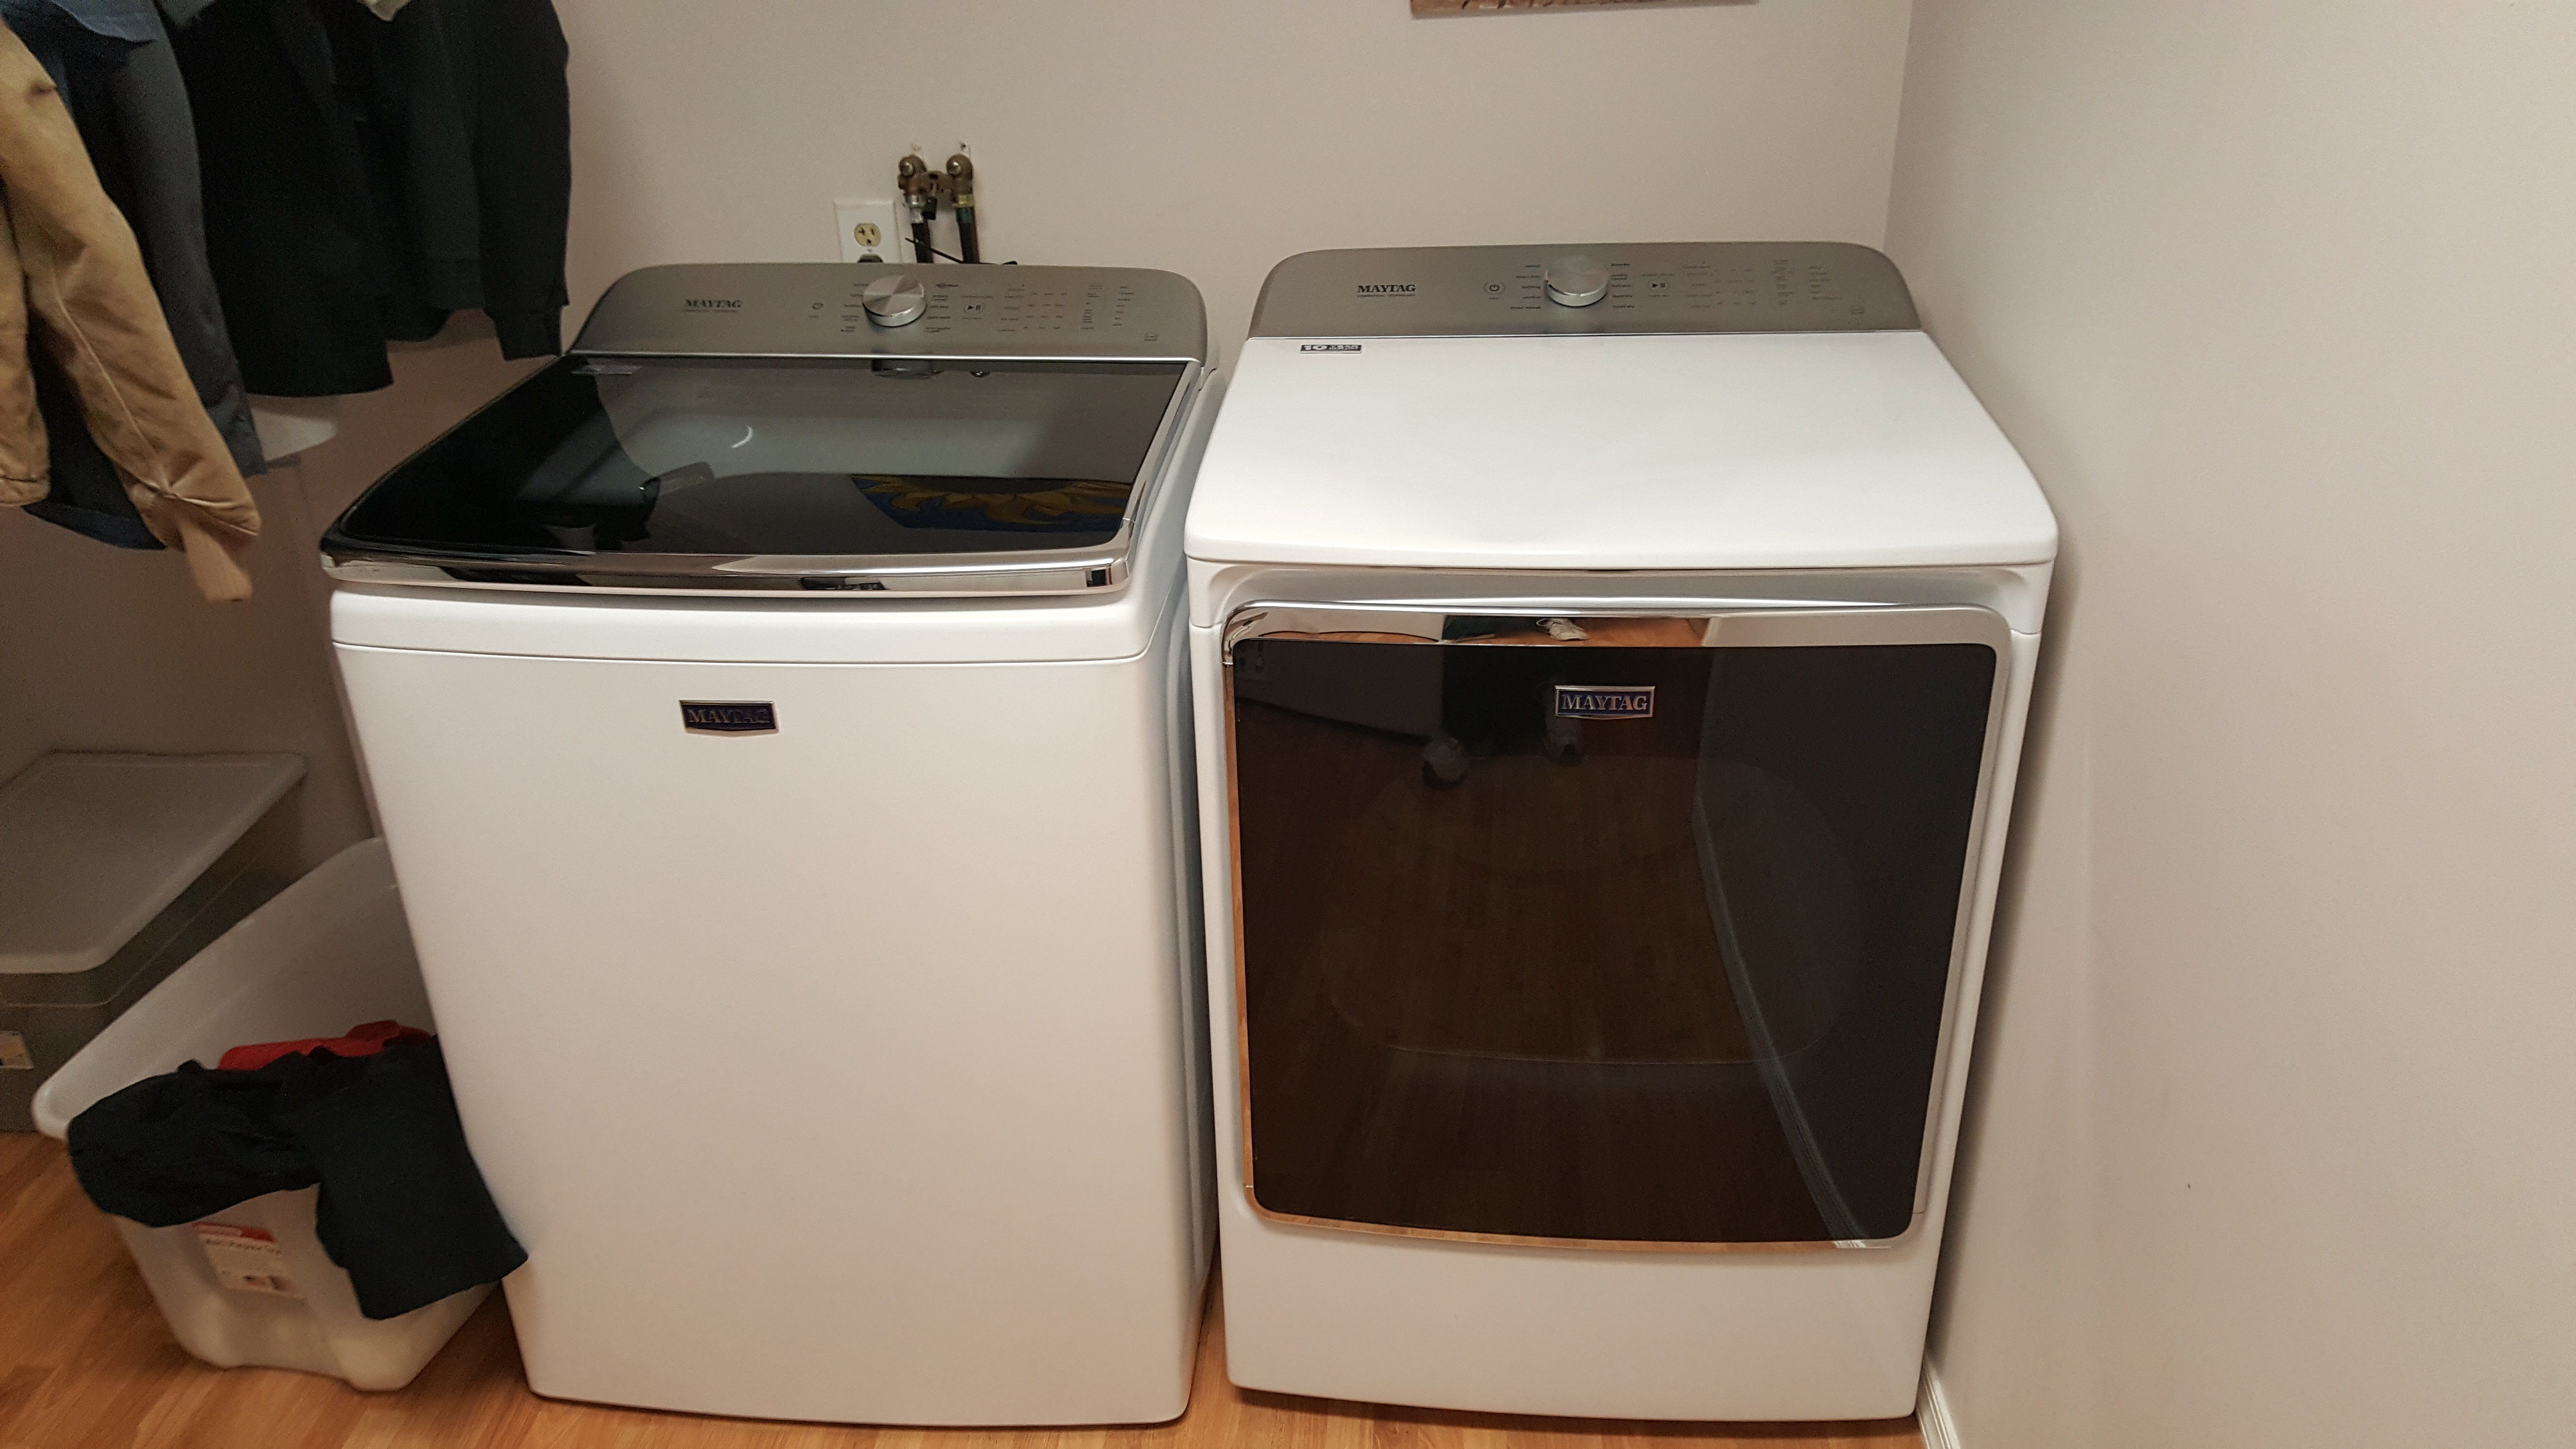 Top 2 530 complaints and reviews about maytag washers dryers - Maytag whirlpool ...